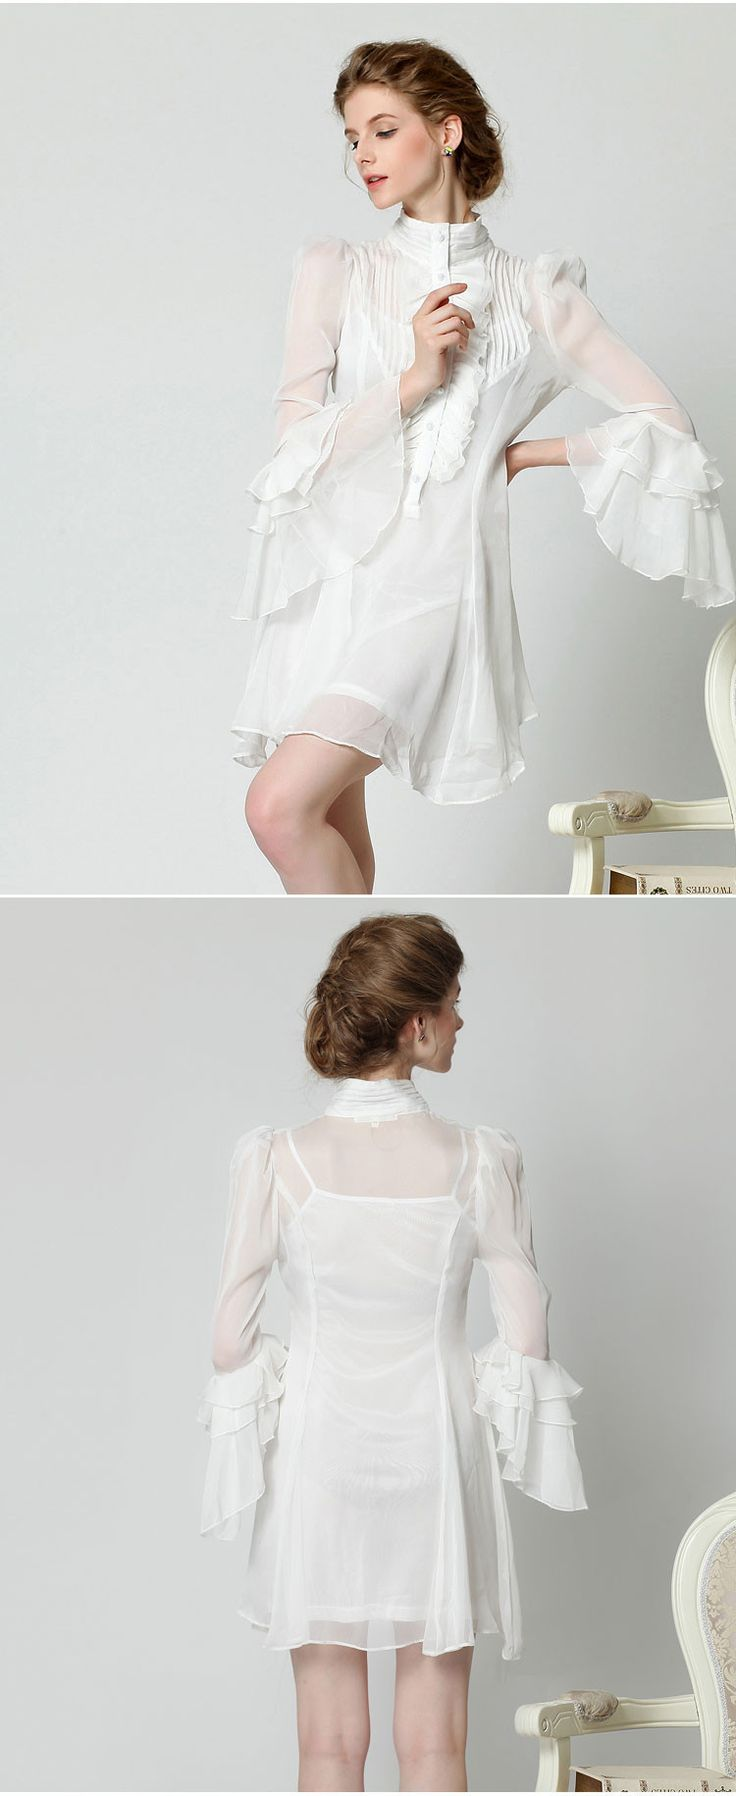 Great Nice Unique Sexy Women Slim Fit Ruffle A Line Long Butterfly Sleeve Knee Length White Chiffon Two Pieces Set Dress-in Dresses from Women's Clothing & Accessories on Aliexpress.com | Alibaba Group